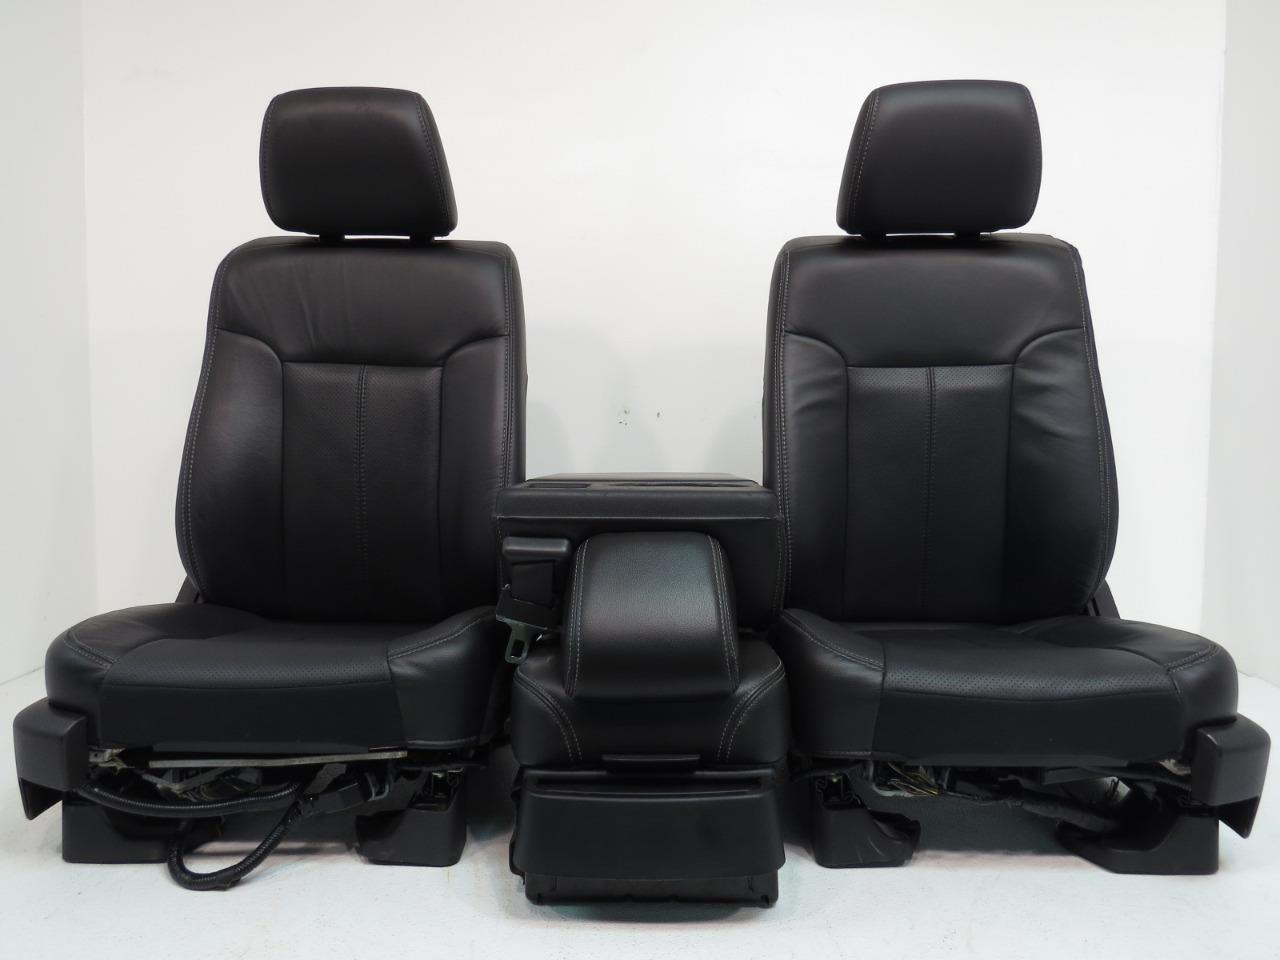 Astounding Ford F150 F 150 Black Leather Front Seats Rear Seat And Jump Seat Leather Seats Console Crew Cab 2009 2010 2011 2012 2013 2014 Spiritservingveterans Wood Chair Design Ideas Spiritservingveteransorg